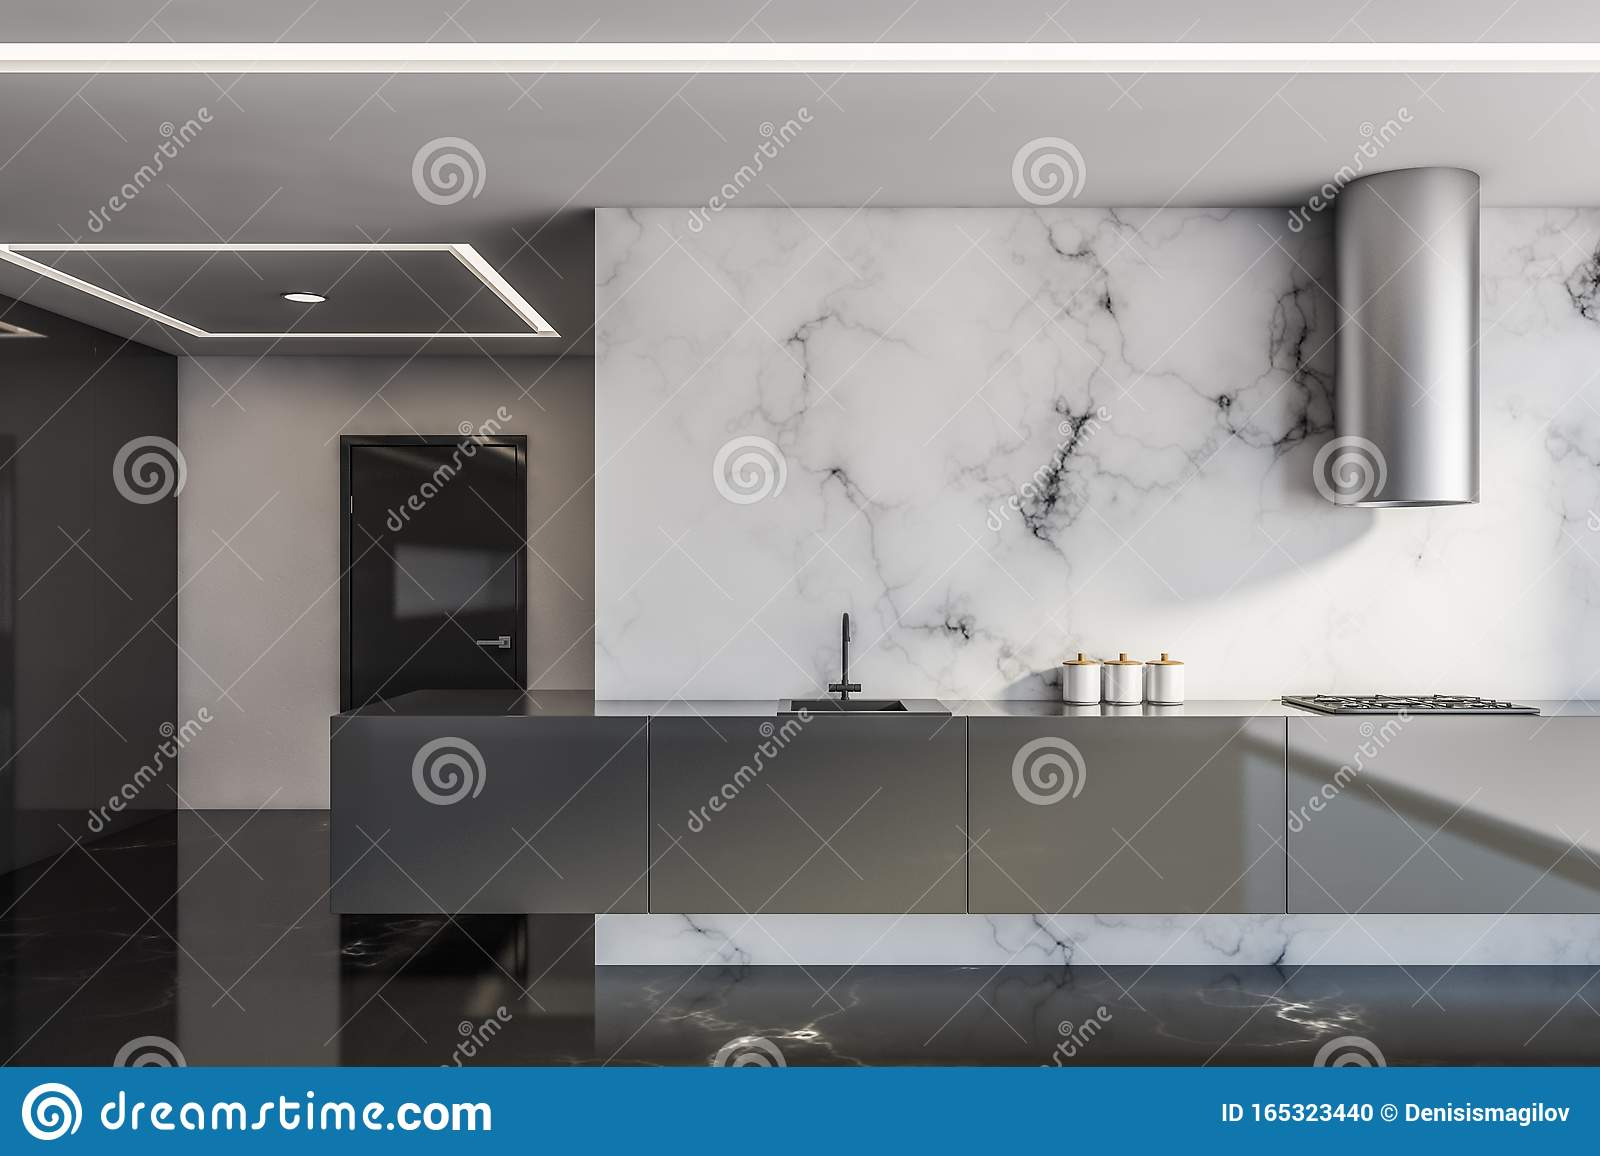 White And Black Marble Kitchen With Countertops Stock Illustration Illustration Of Counter Architectural 165323440